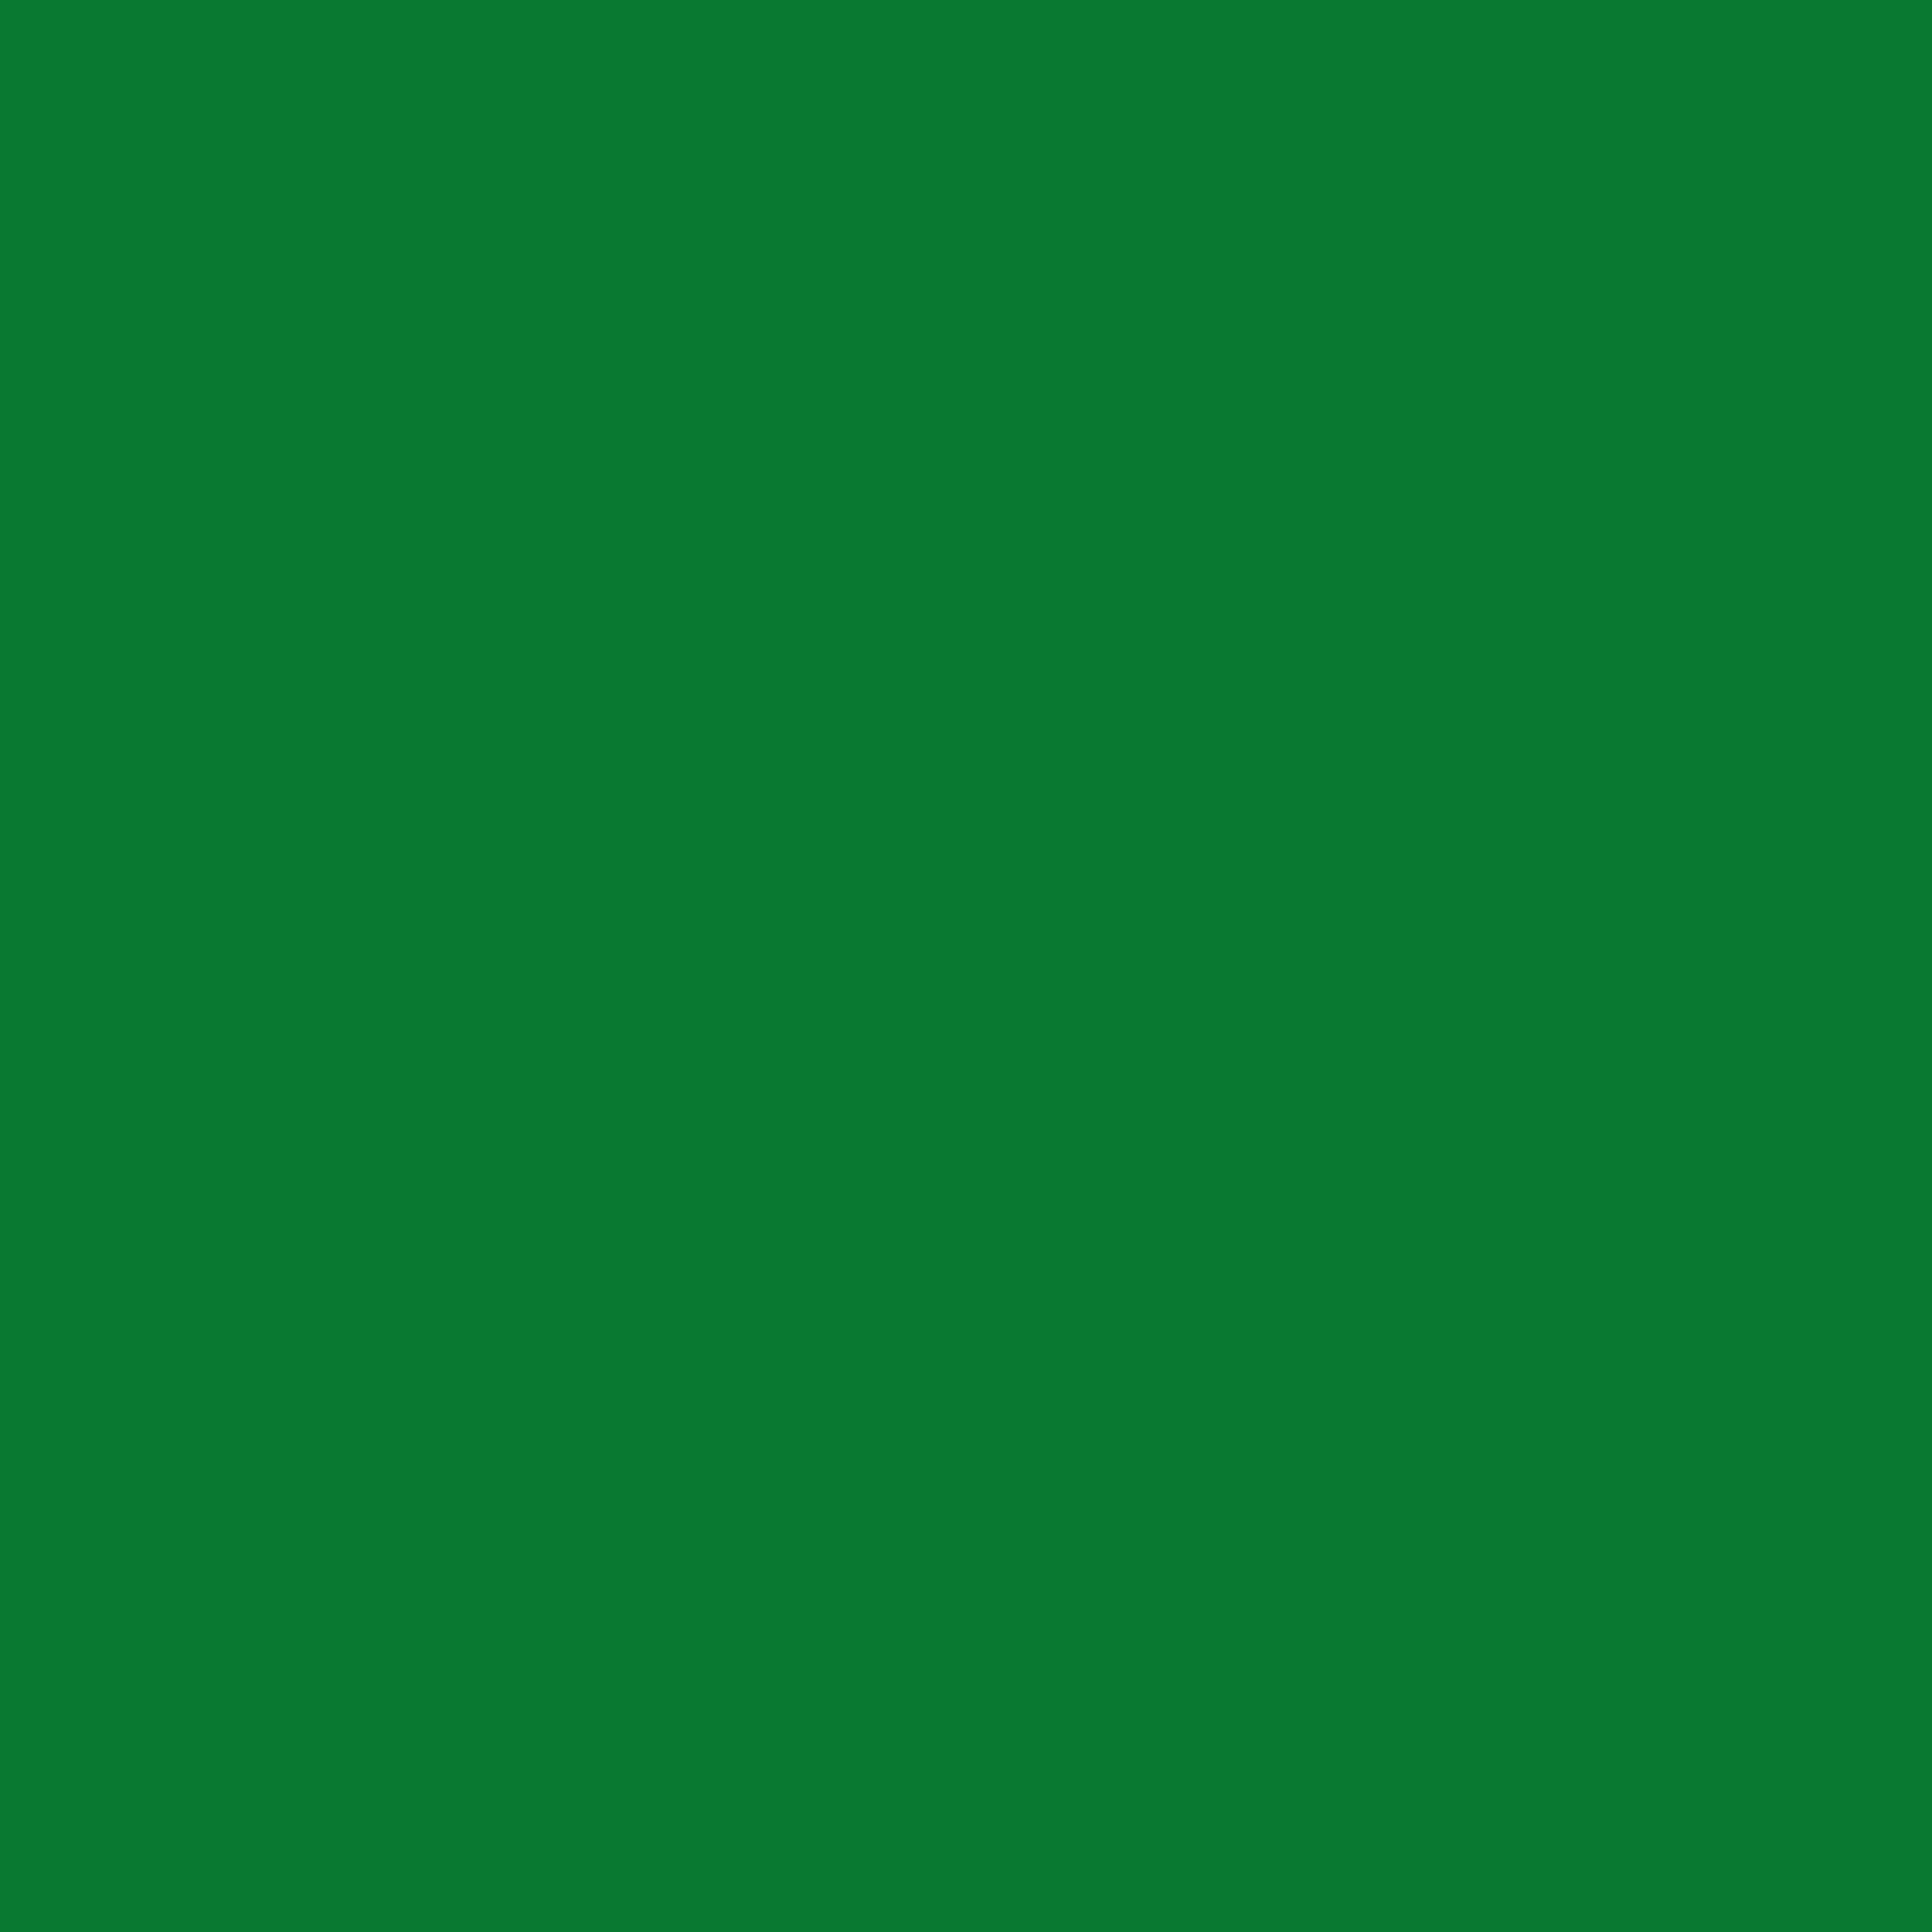 2732x2732 La Salle Green Solid Color Background